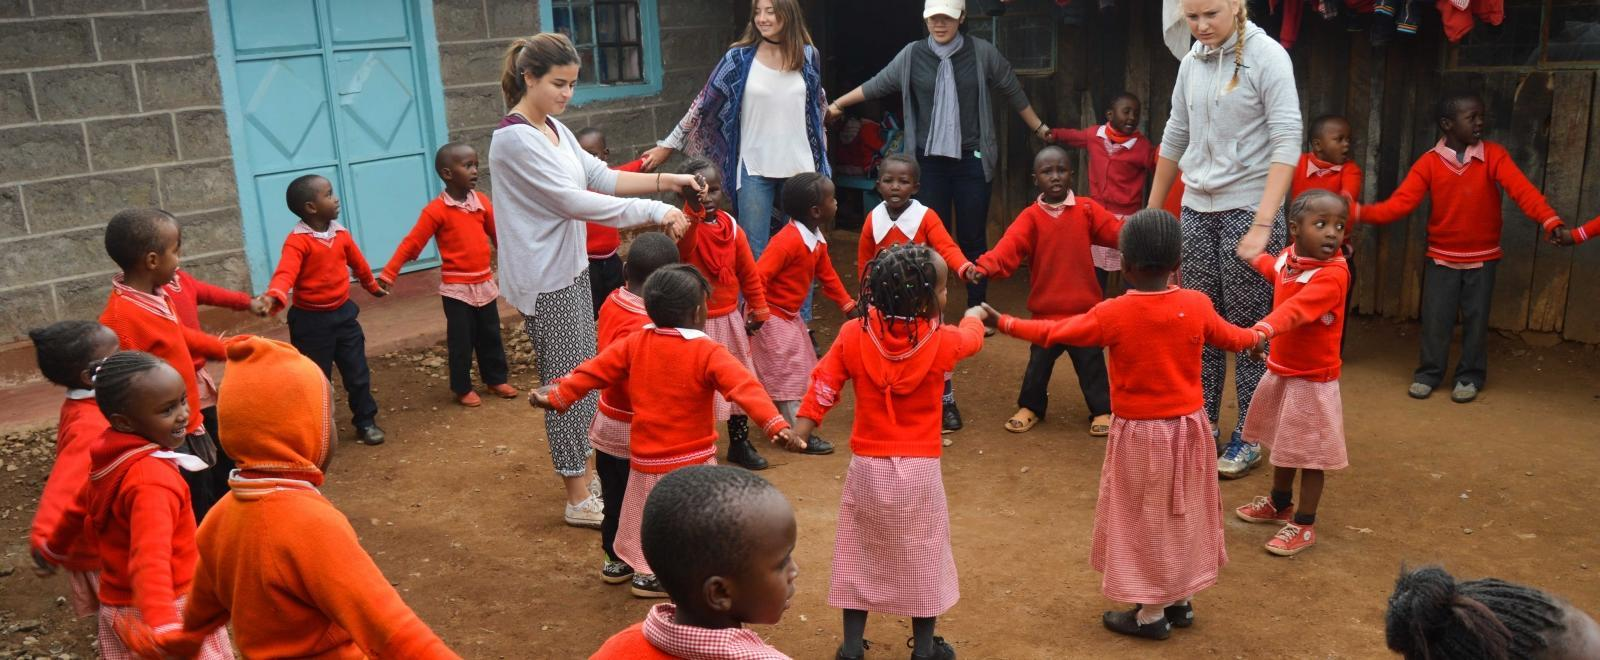 Volunteer Work With Children In Kenya For Teenagers Projects Abroad